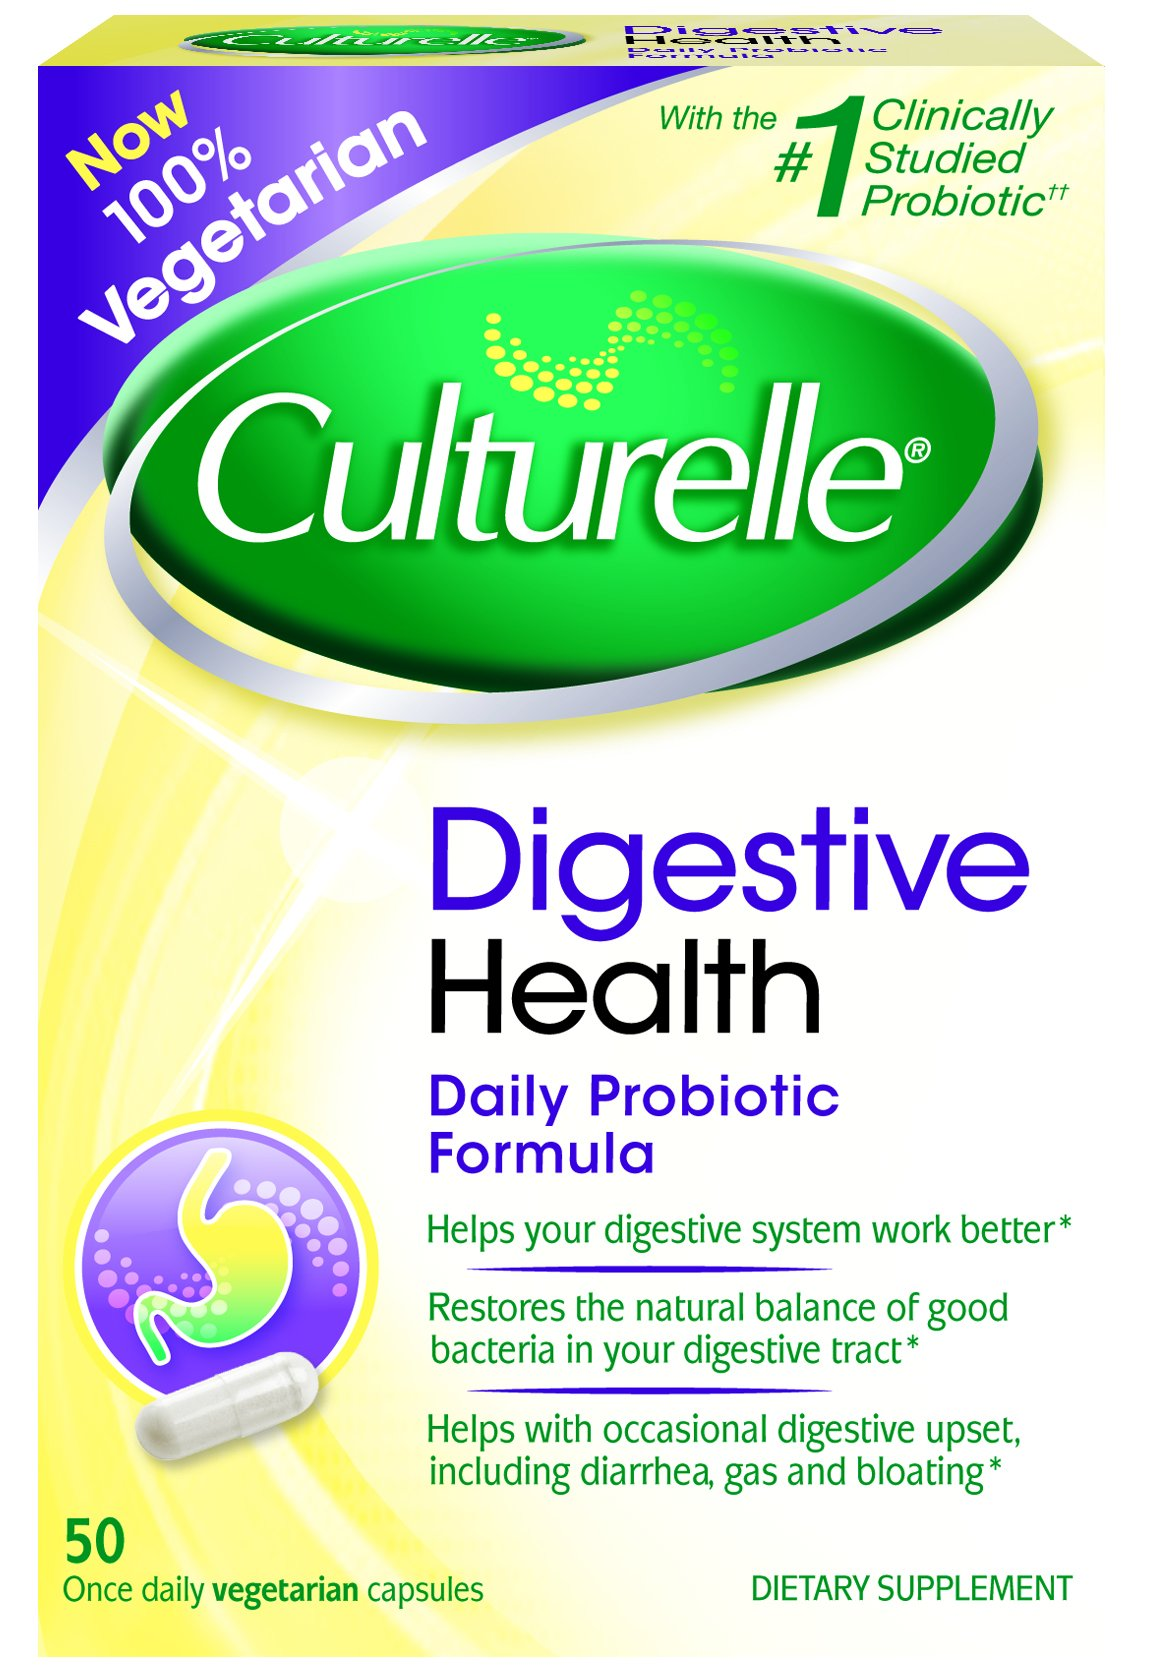 Culturelle Digestive Health Daily Formula Probiotic, One Per Day Dietary Supplement, Contains 100% Naturally Sourced Lactobacillus GG –The Most Clinically Studied Probiotic†, 50 Count